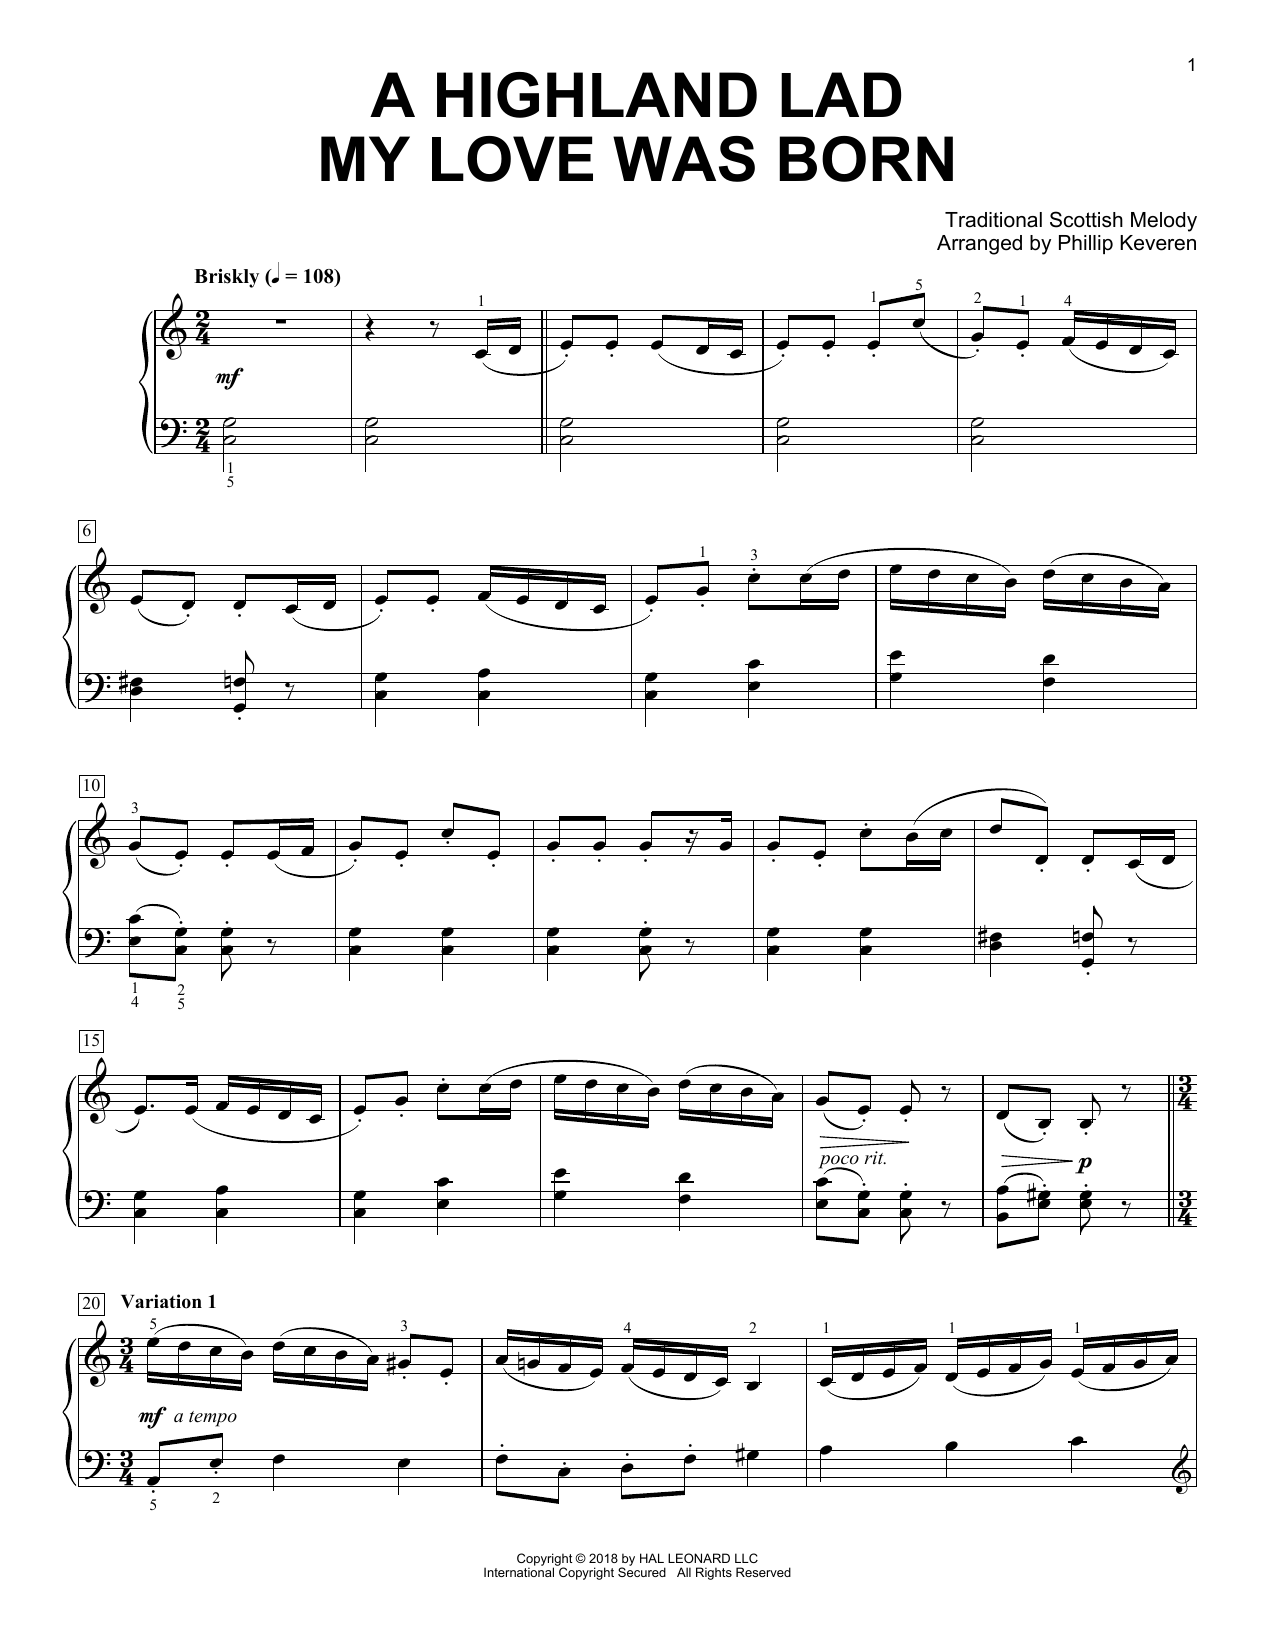 Robert Burns A Highland Lad My Love Was Born [Classical version] (arr. Phillip Keveren) sheet music notes and chords. Download Printable PDF.